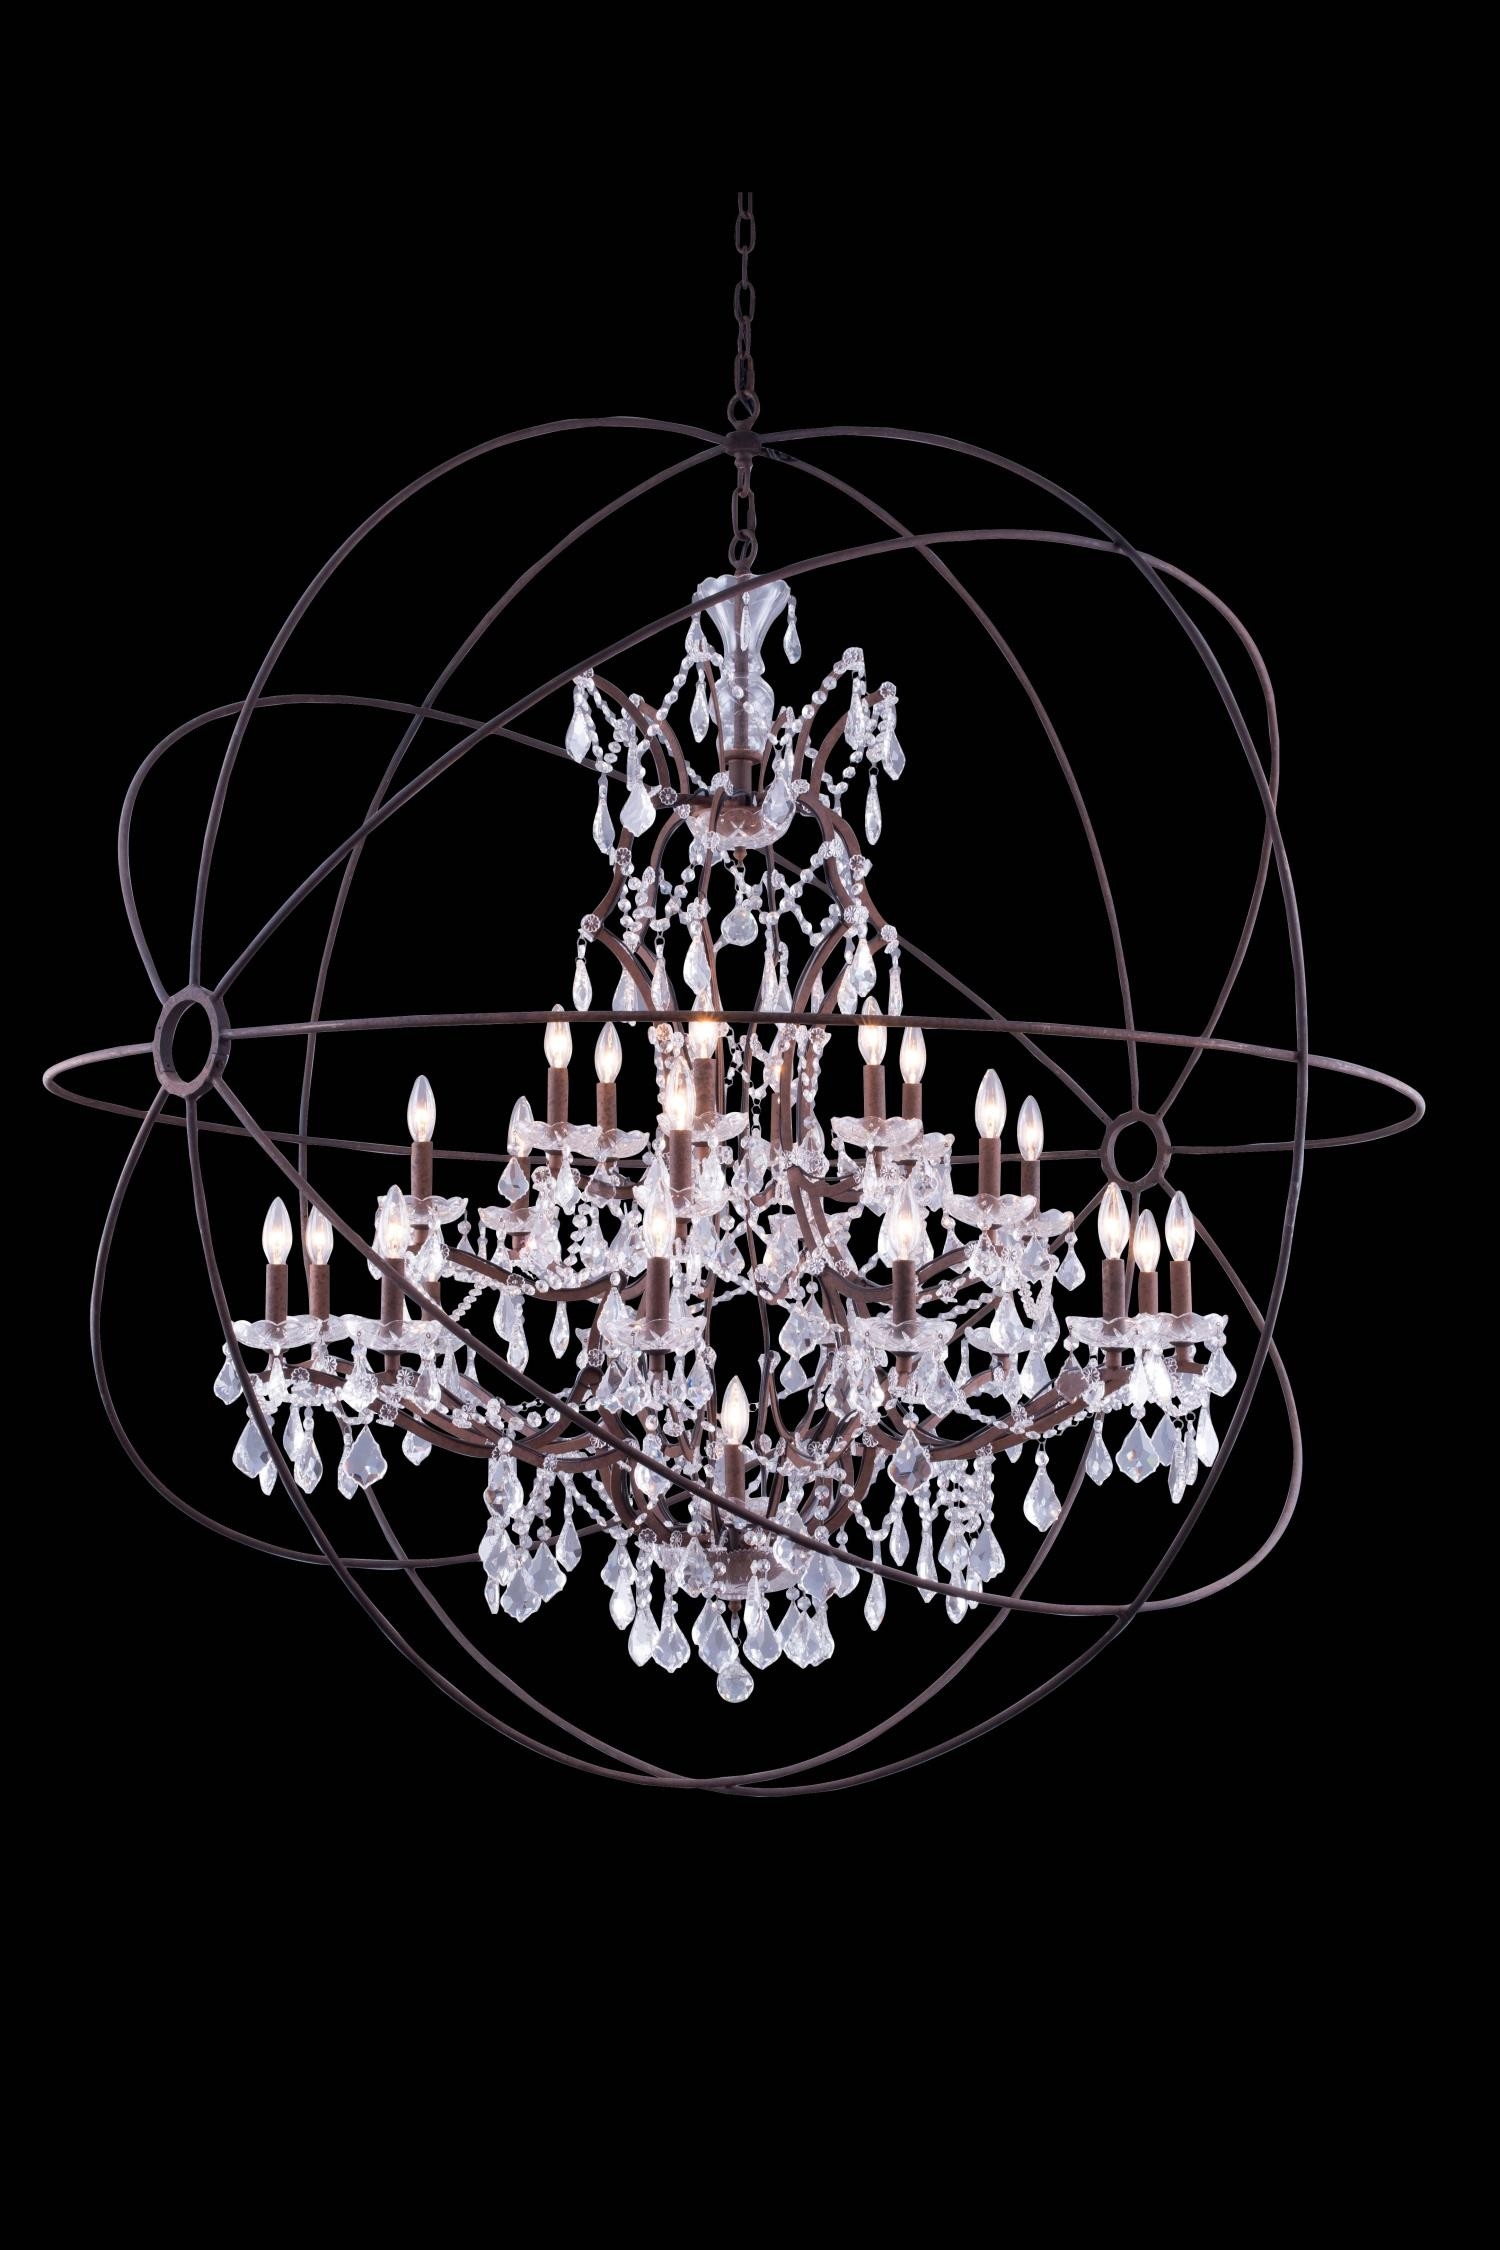 Chandelier Inspiring Extra Large Orb Chandelier Large Orbit Regarding Extra Large Crystal Chandeliers (#2 of 12)